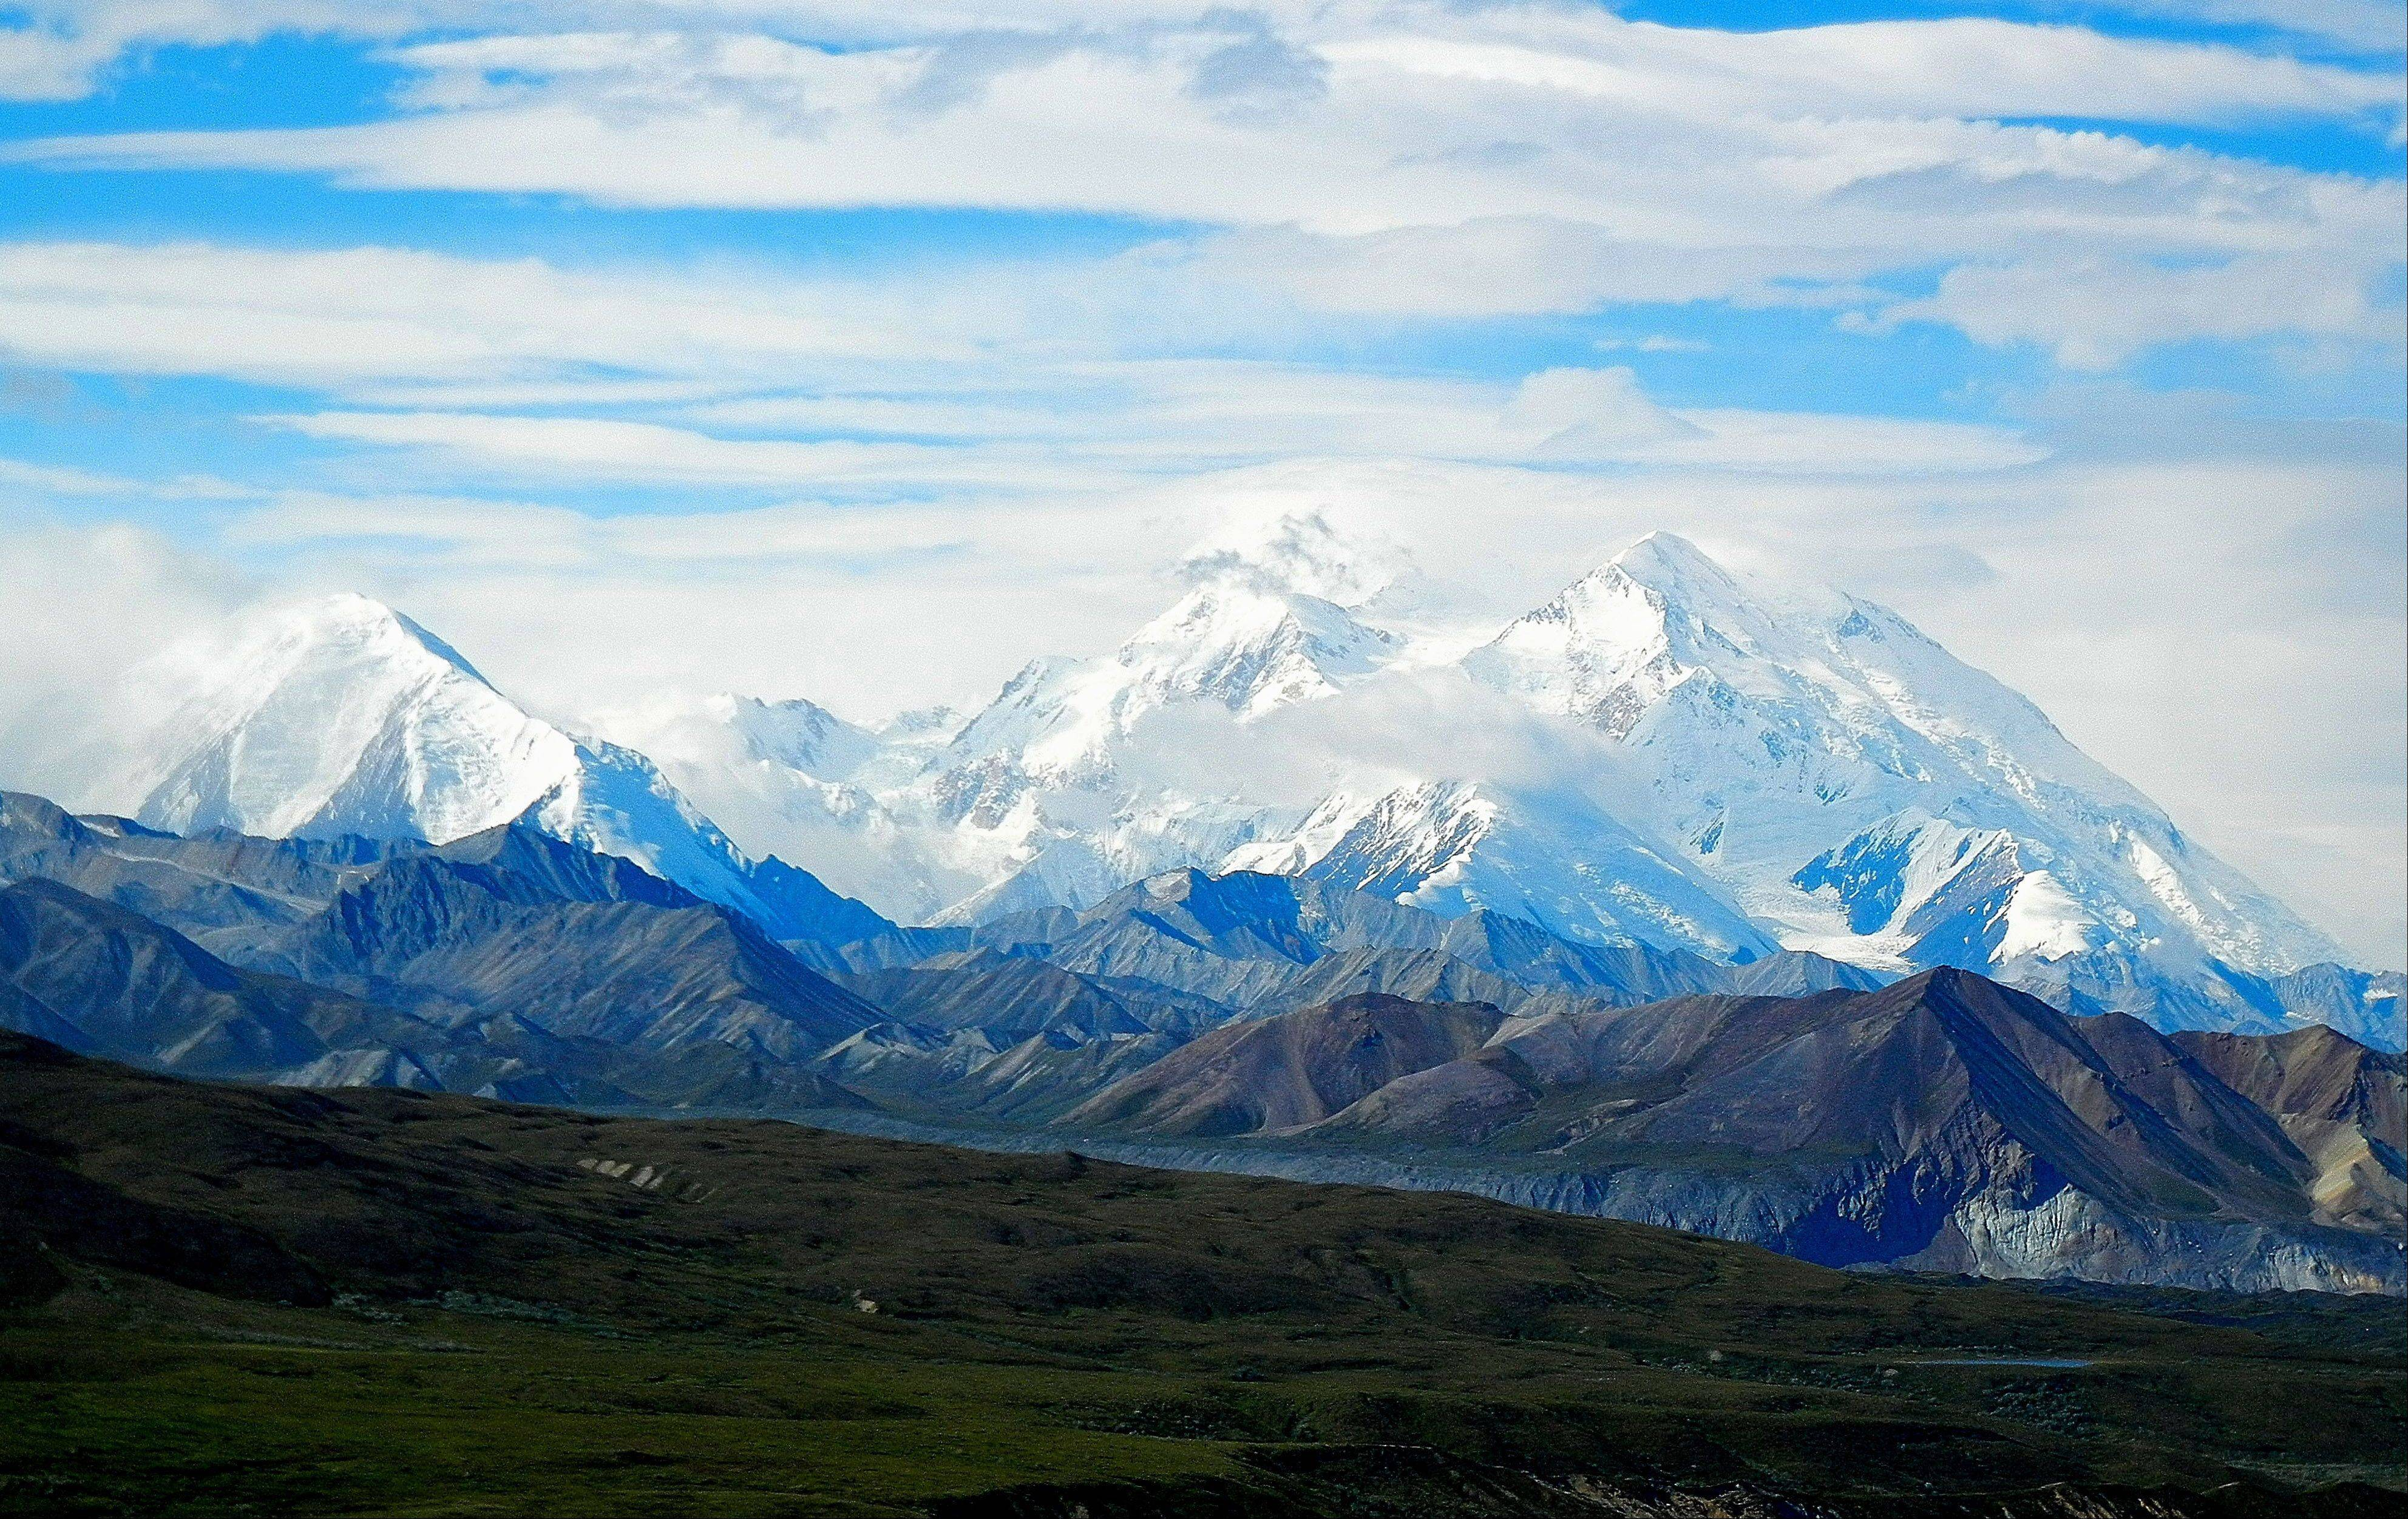 Clouds wrap around Mount McKinley in Alaska as snow covers its peaks last month.